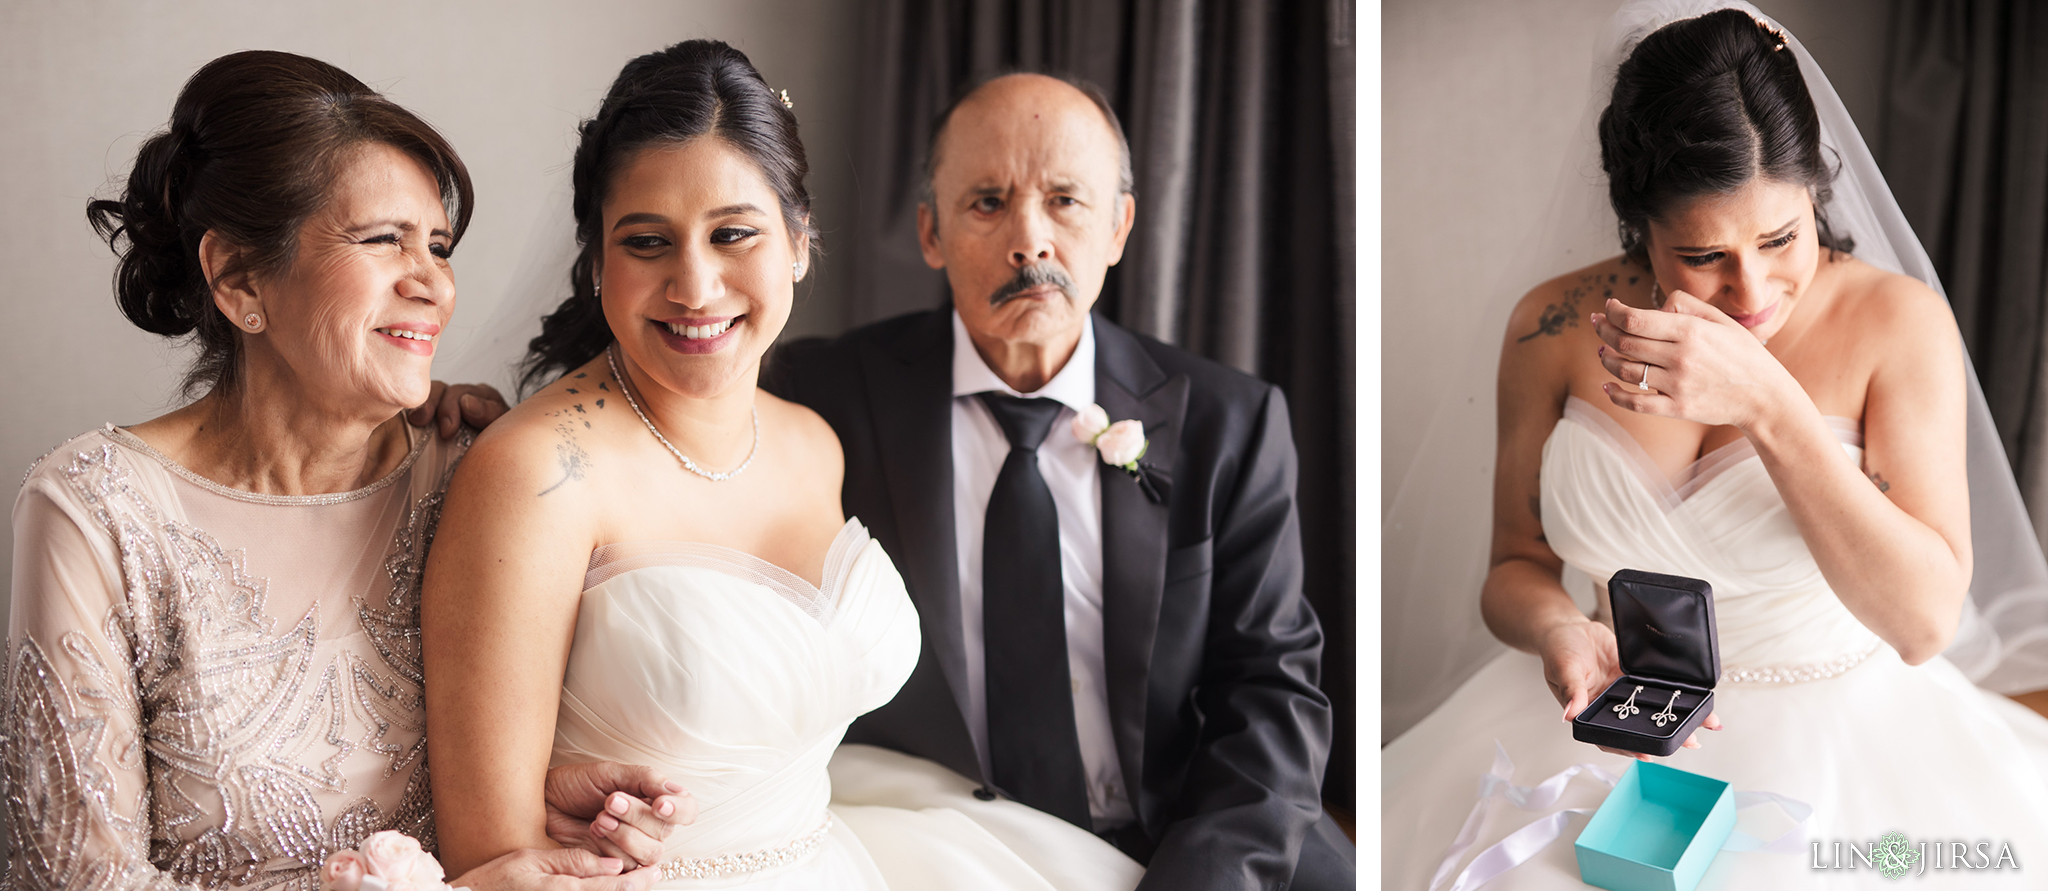 10 Noor Pasadena Wedding Photography